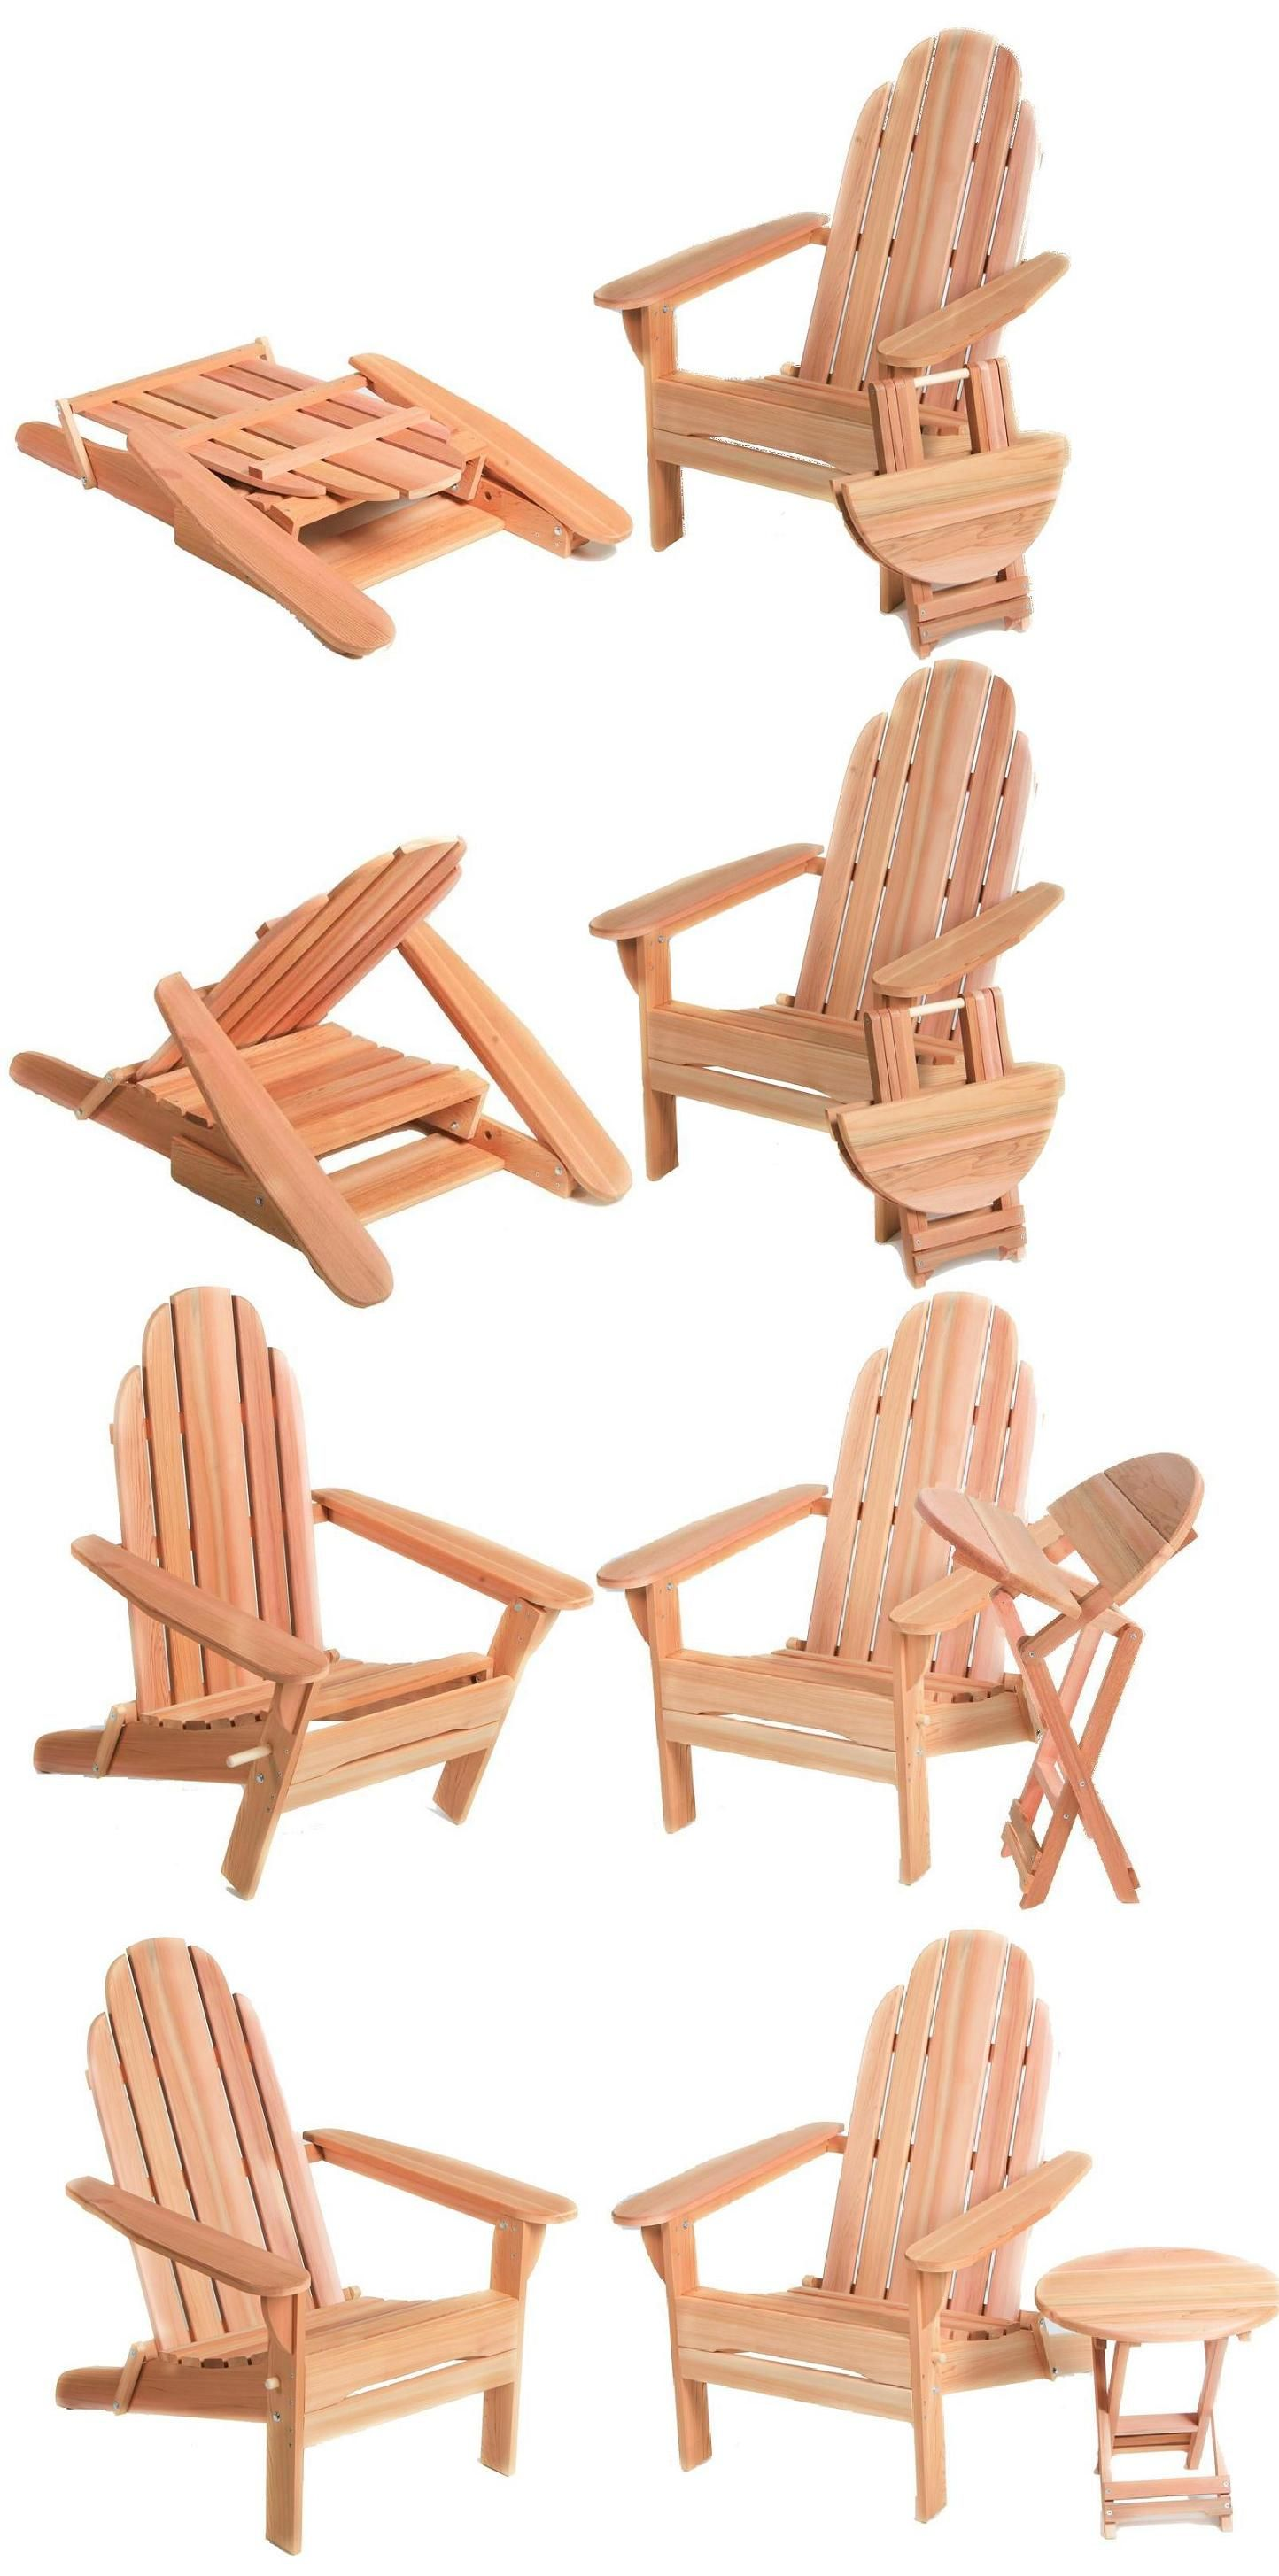 Folding adirondack chairs table most repinned pinterest adirondack chairs folding - Patterns for adirondack chairs ...